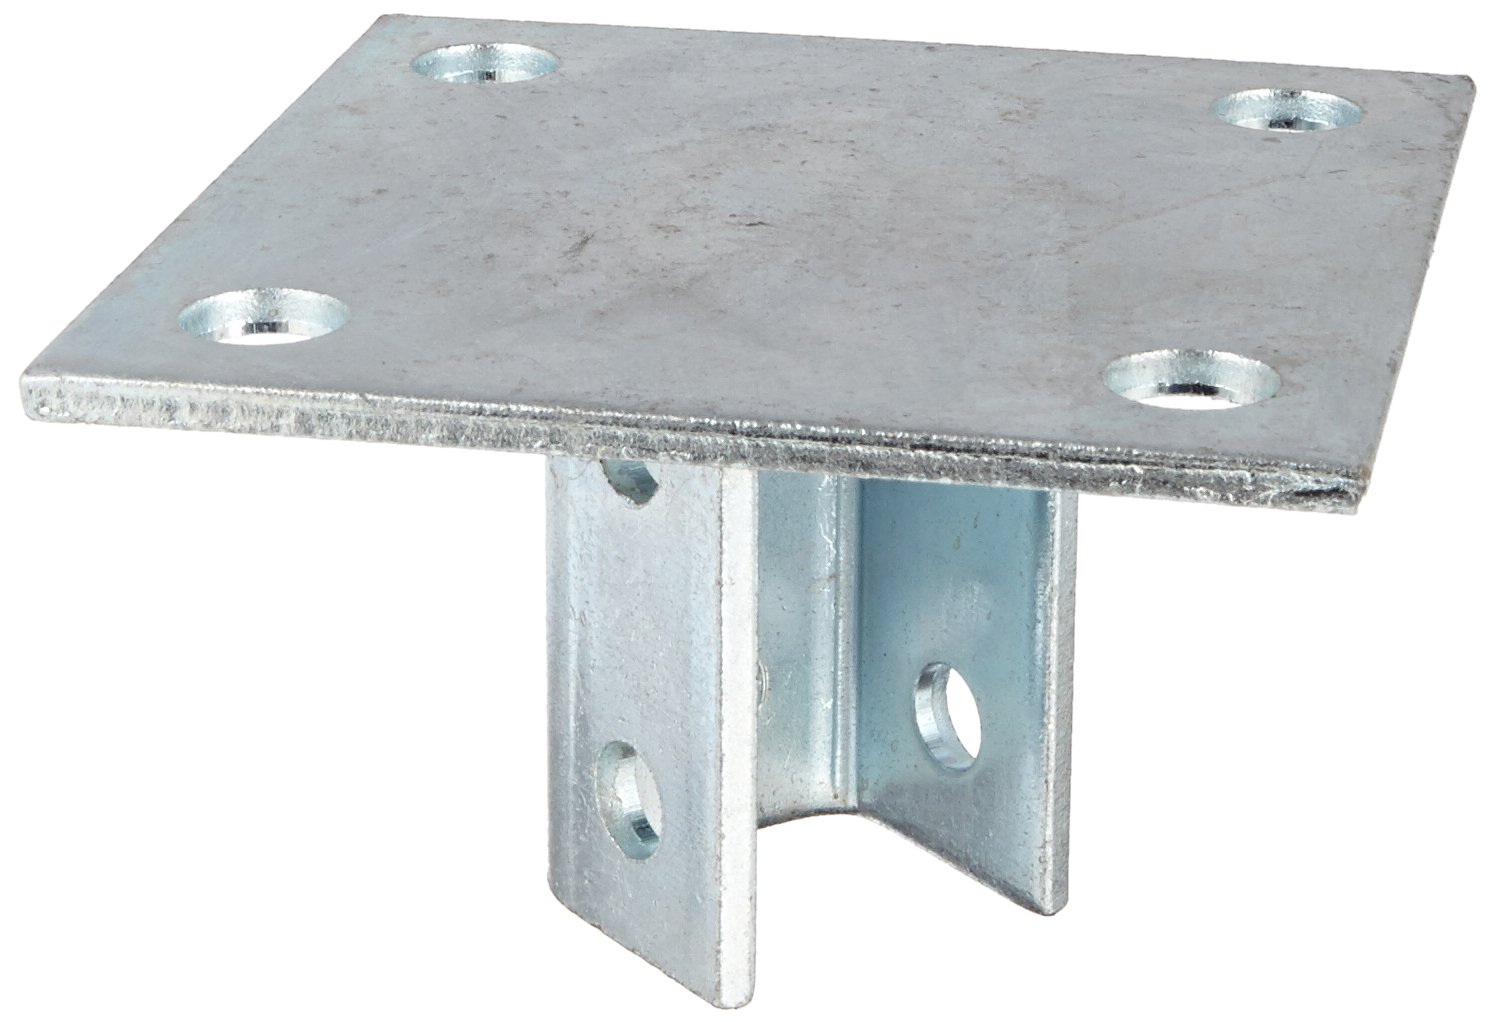 Morris Products 17452 Post Base Single Channel, 4 Hole, Standard, 3-1/2'' Channel